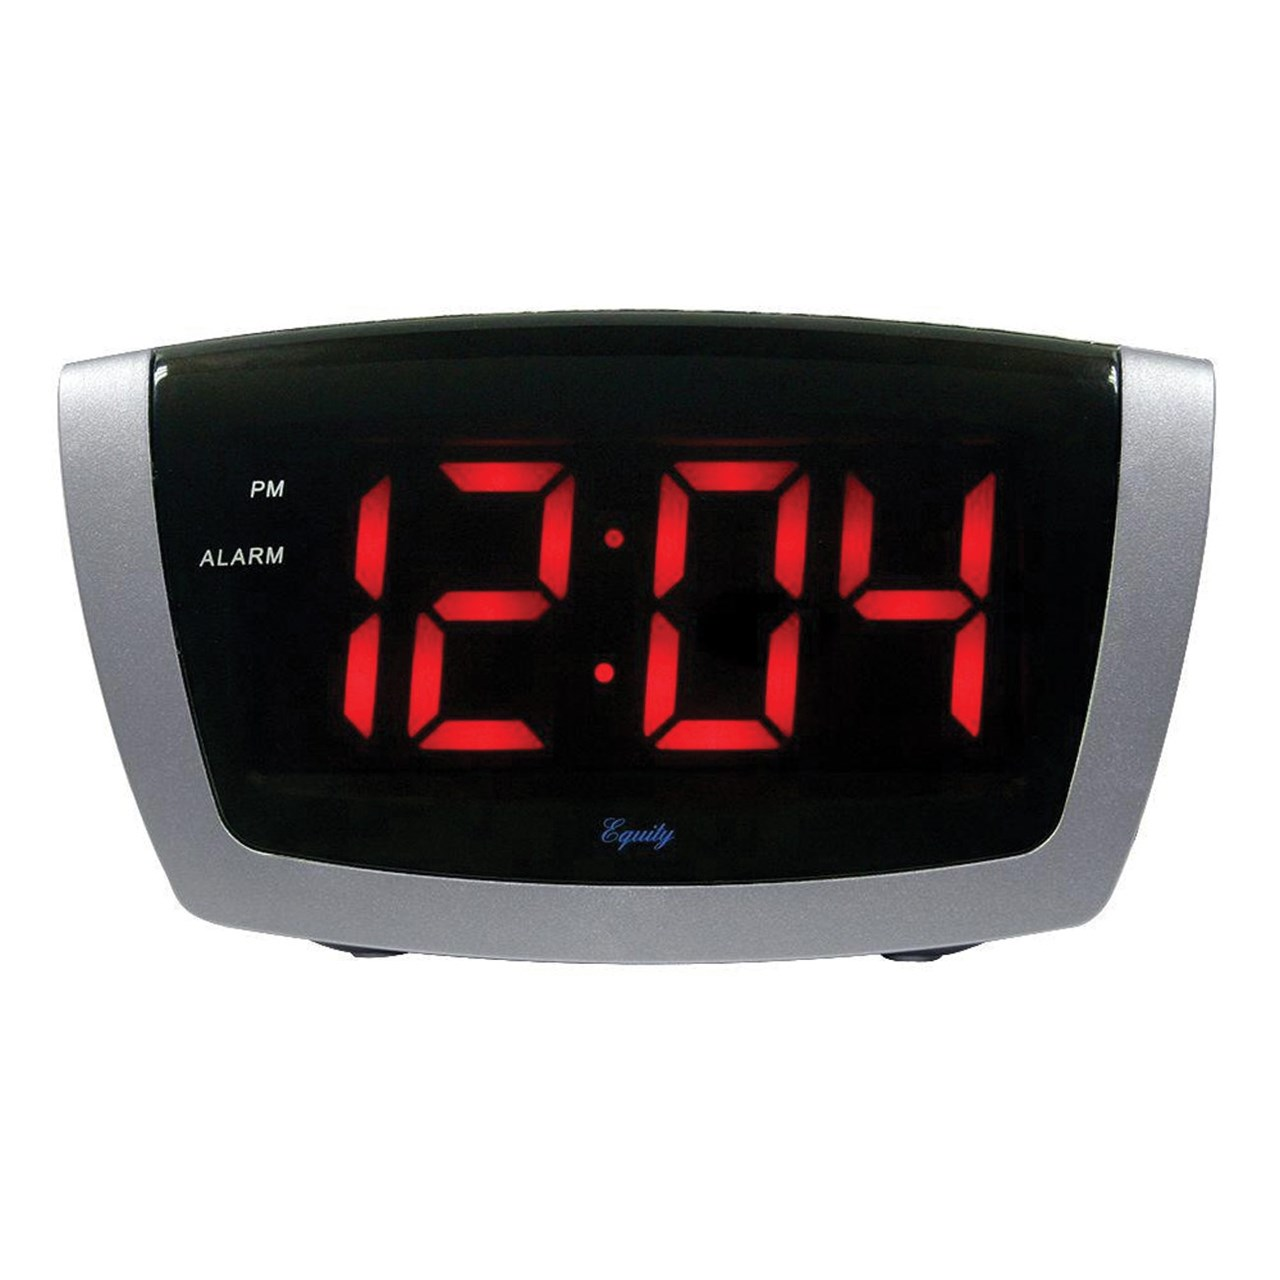 Small Led Alarm Clock Maxiaids Digital Alarm Clock With 1 8 Inch Jumbo Led